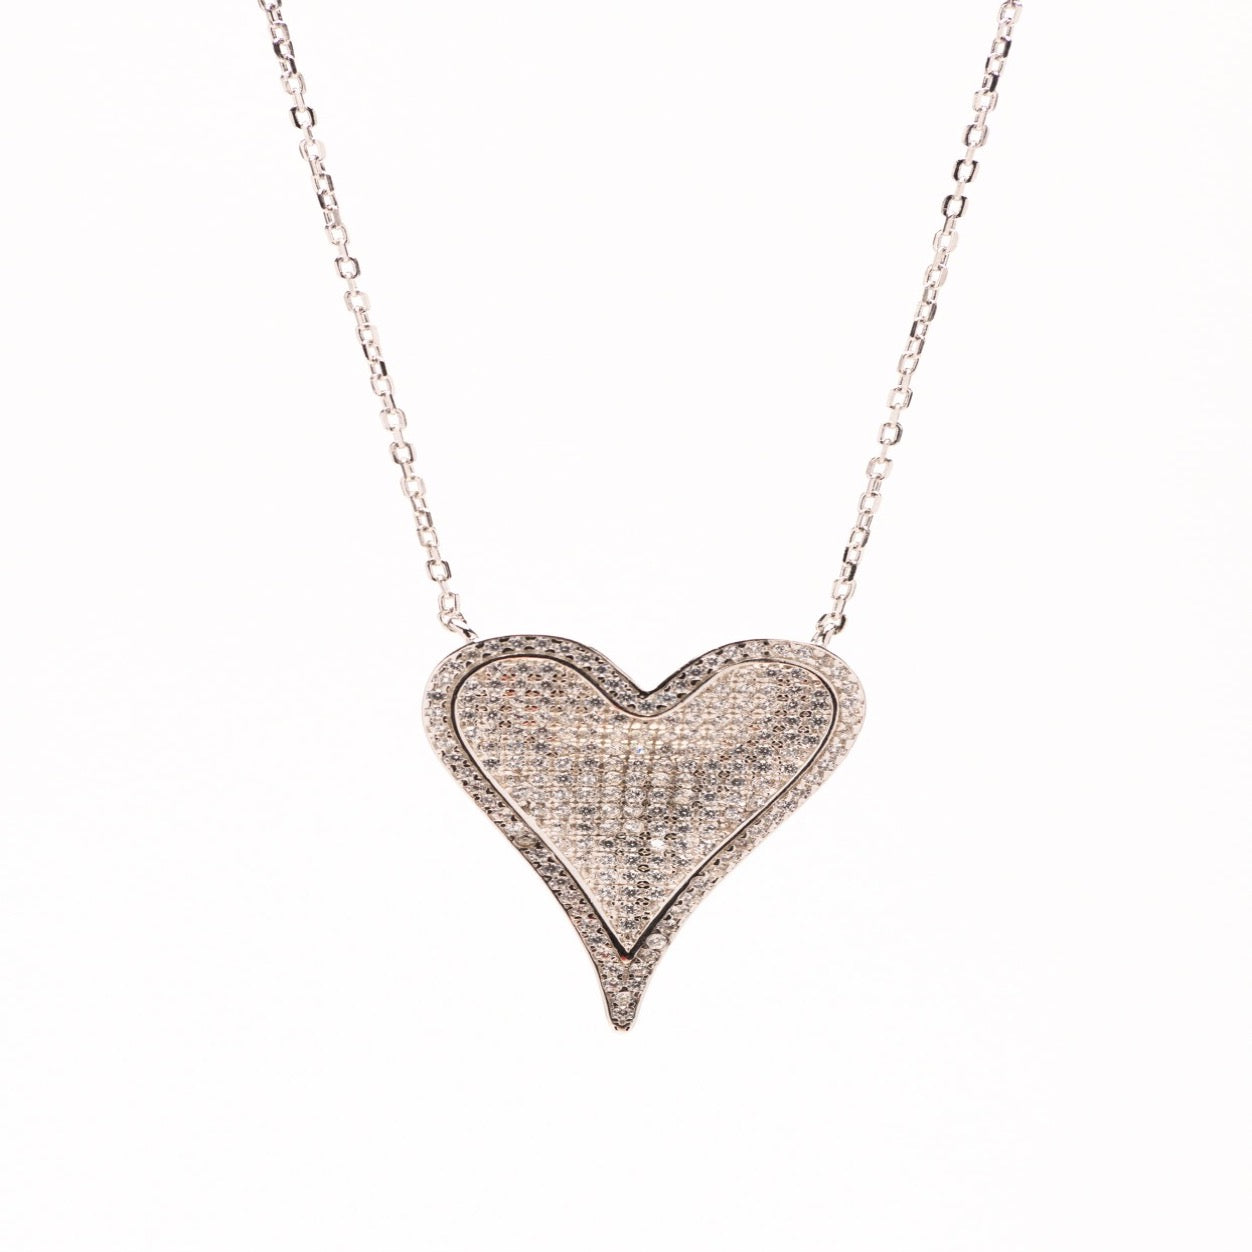 Sterling silver microwave heart necklace